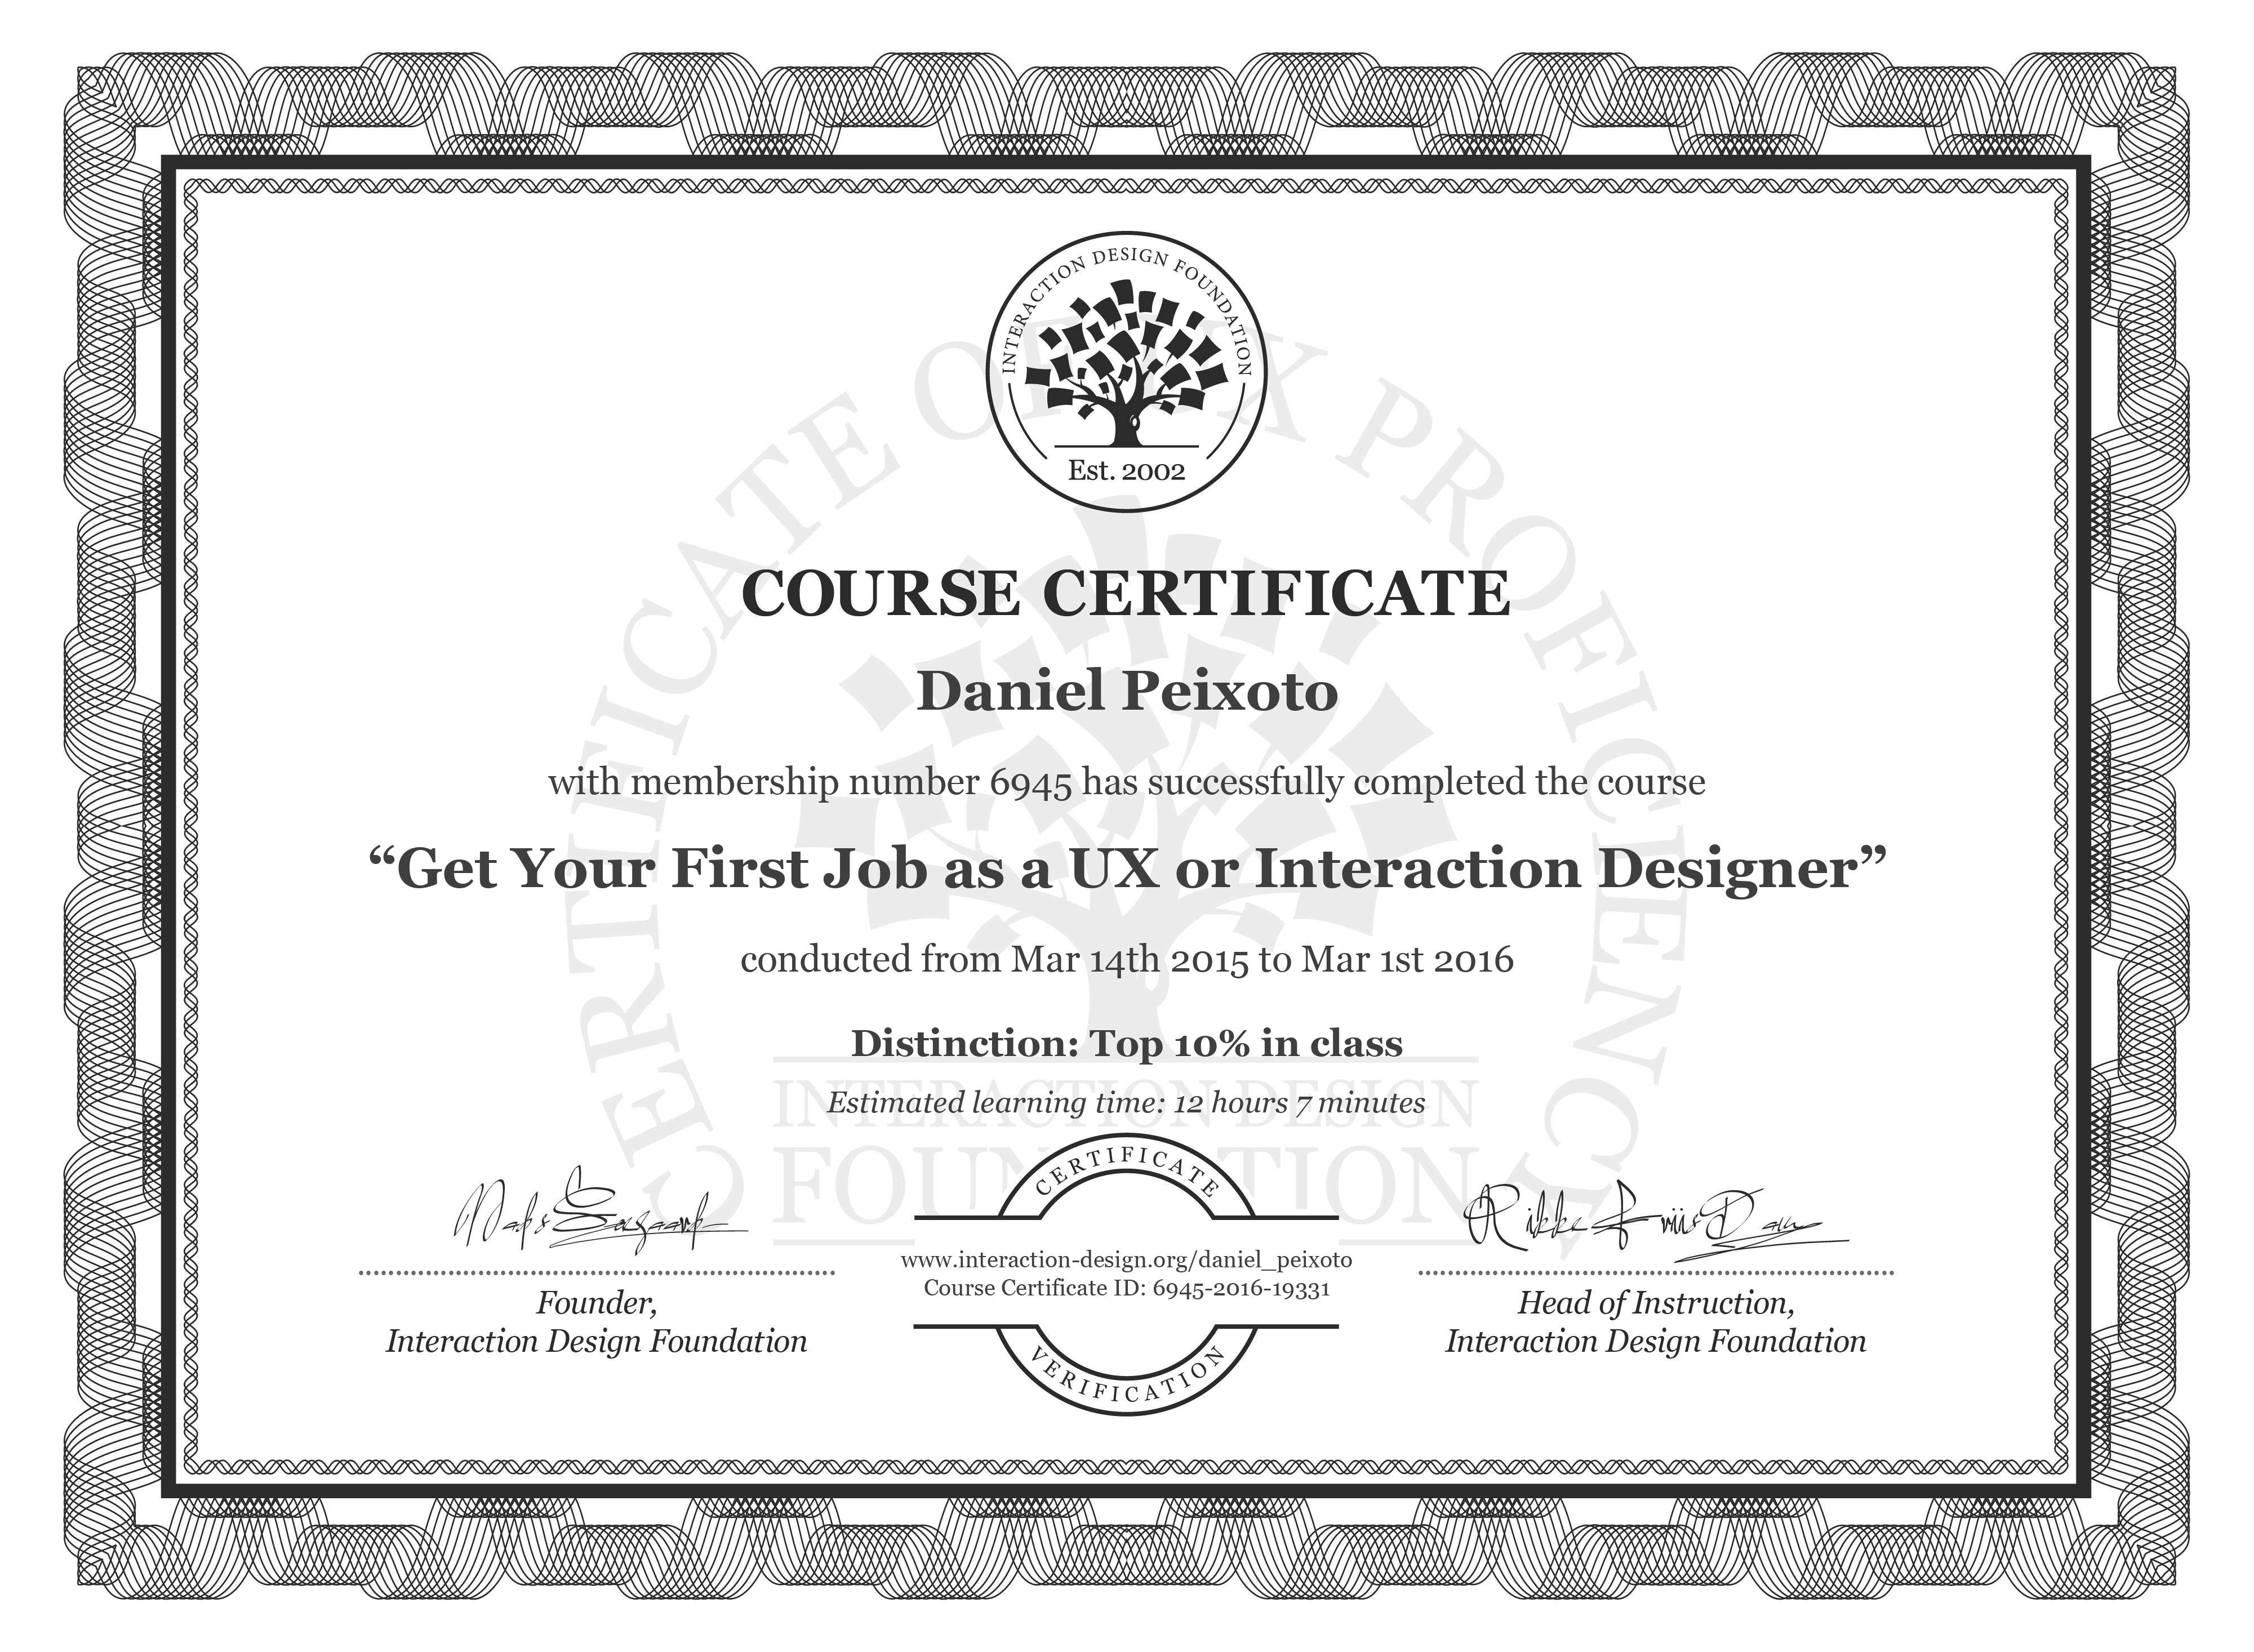 Daniel Peixoto's Course Certificate: Get Your First Job as a UX or Interaction Designer